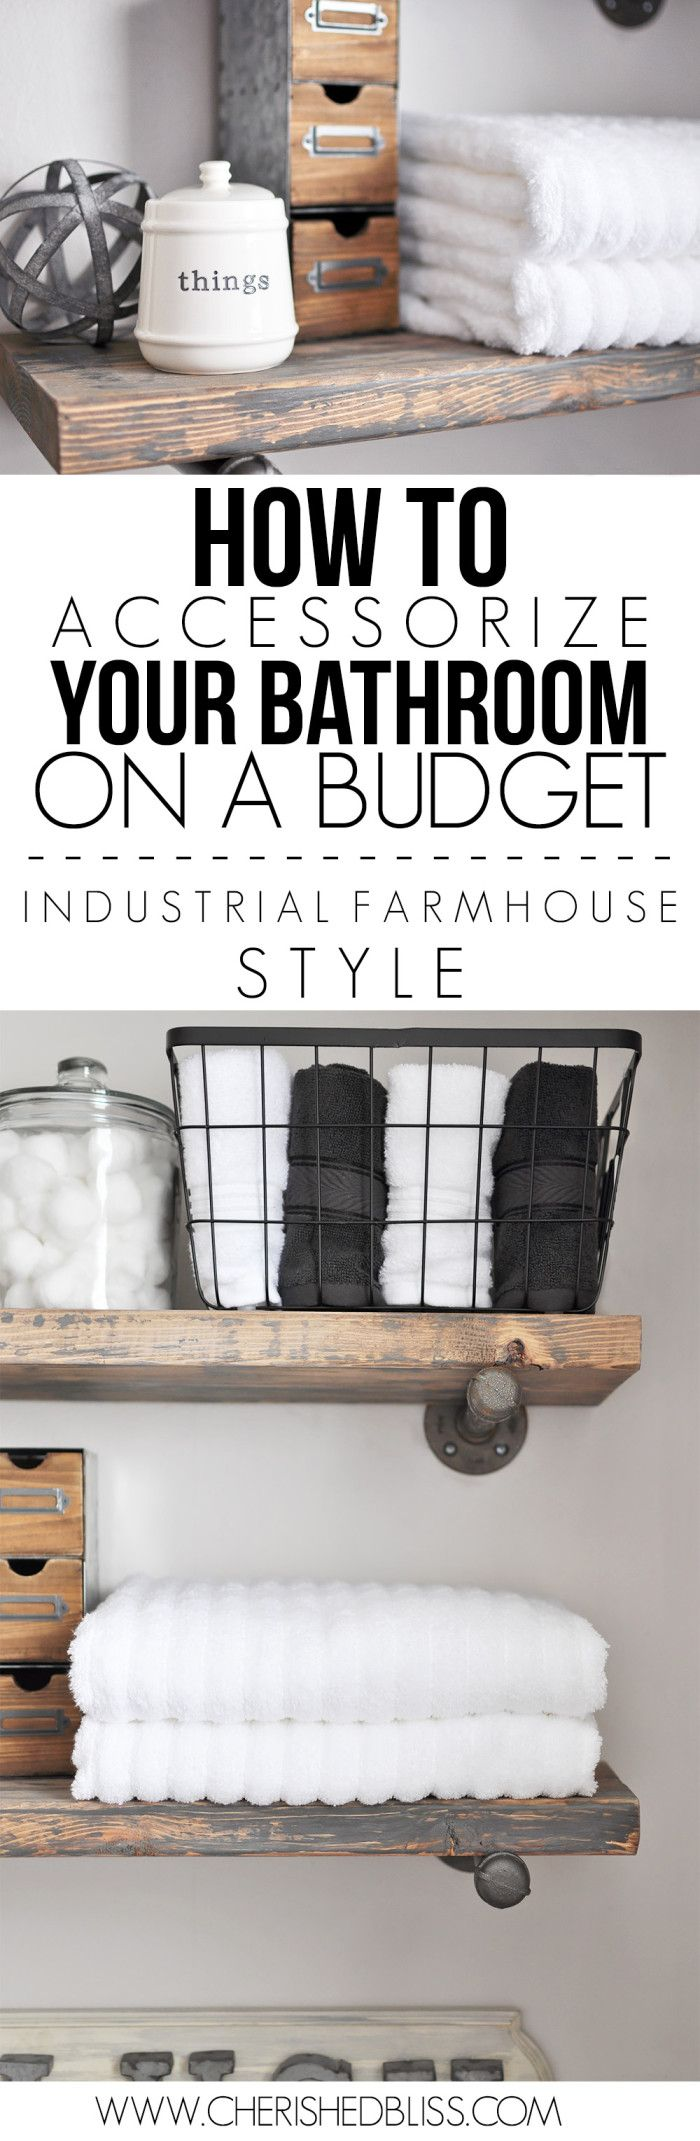 Best 25+ Farmhouse budget ideas on Pinterest | Powder room decor ...